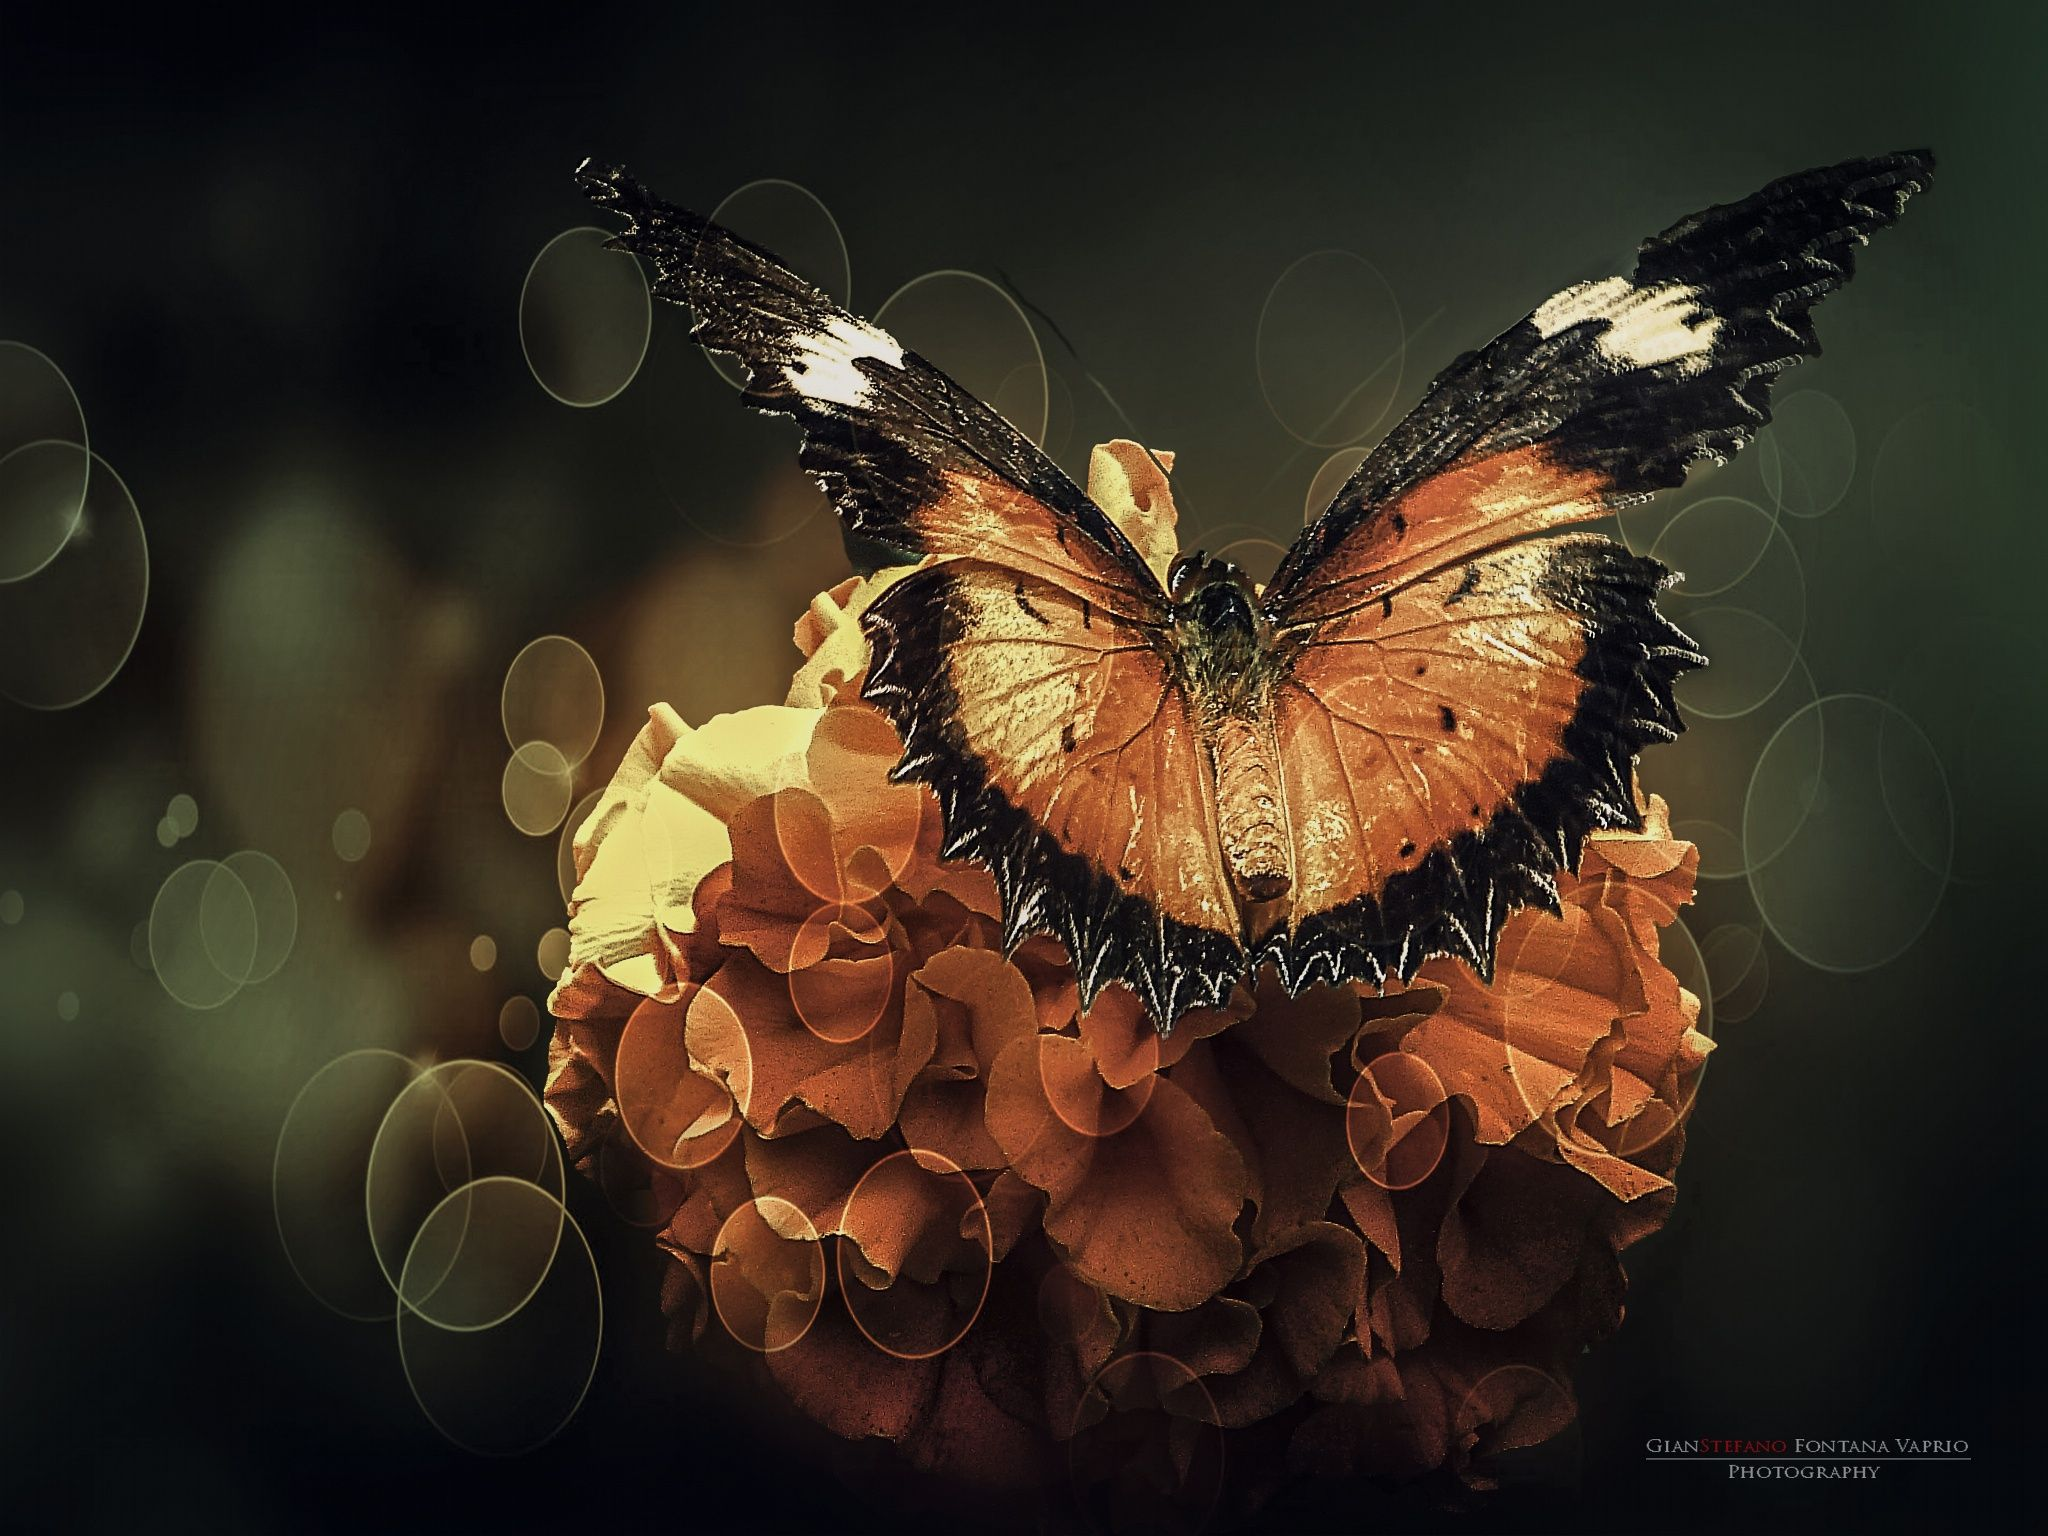 Butterfly's world II by Gianstefano Fontana Vaprio on 500px